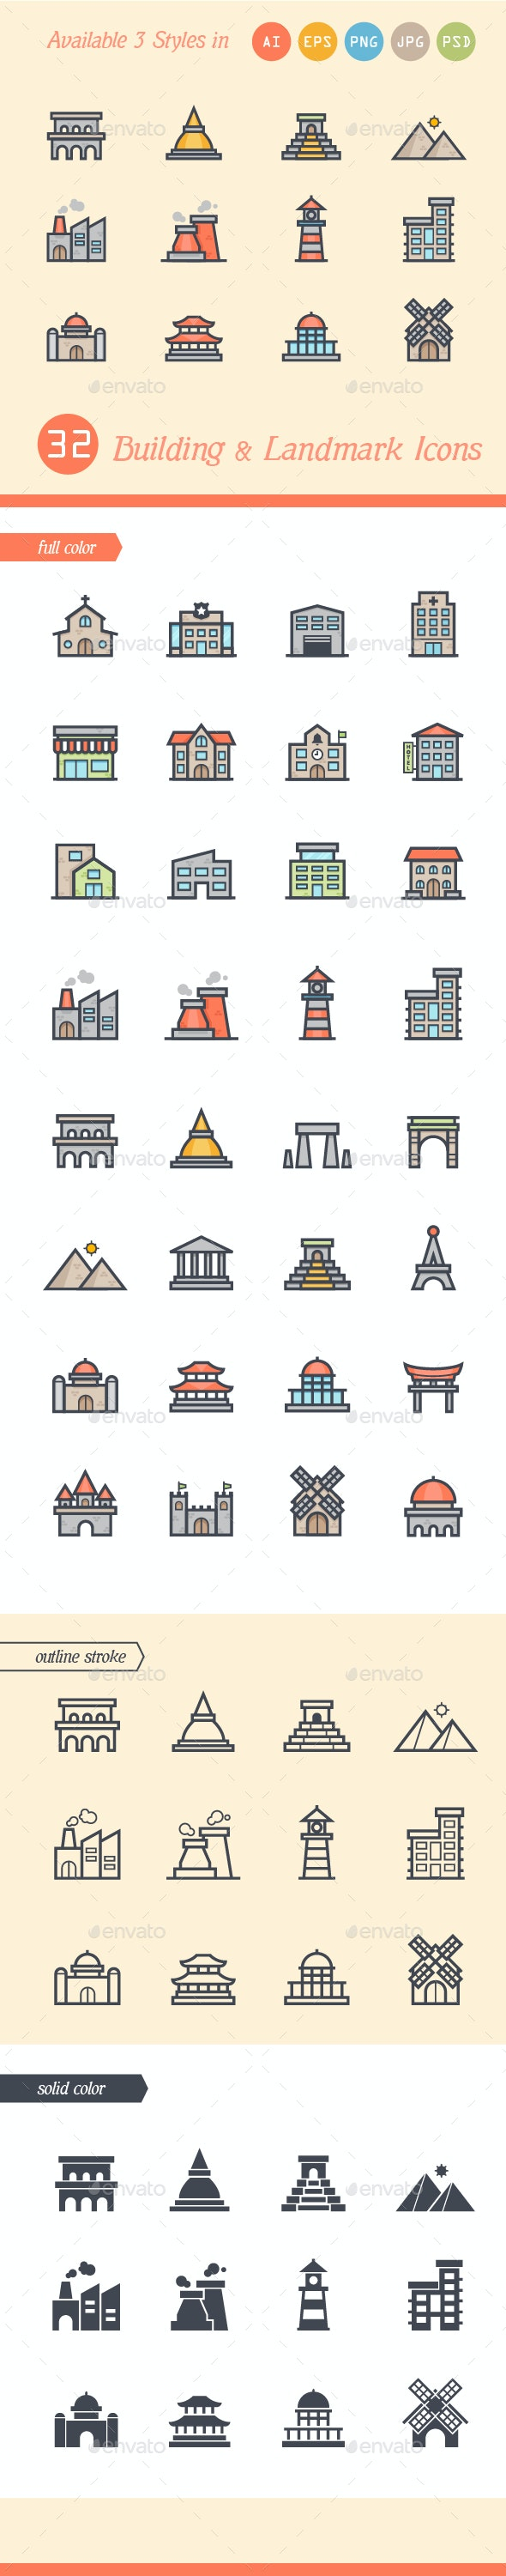 Set of 3 Styles Building and Landmark Icons - Buildings Objects